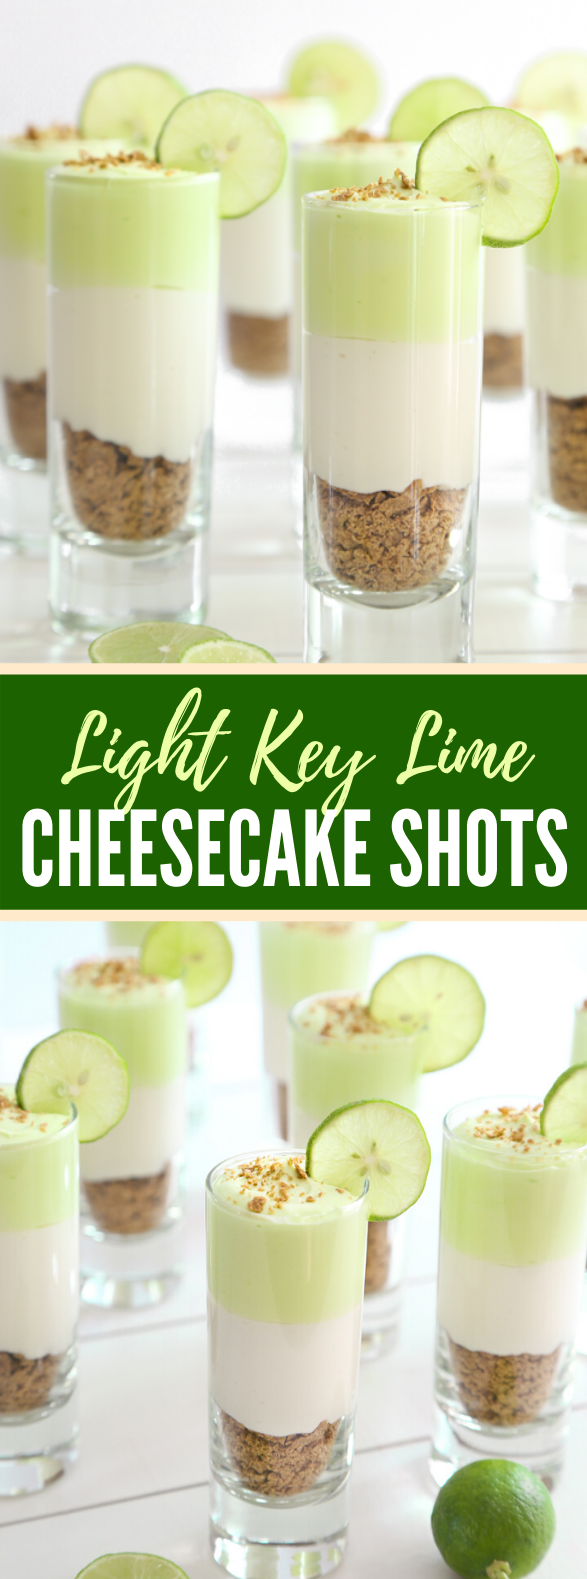 LIGHT KEY LIME CHEESECAKE SHOTS #dessert #partyrecipe